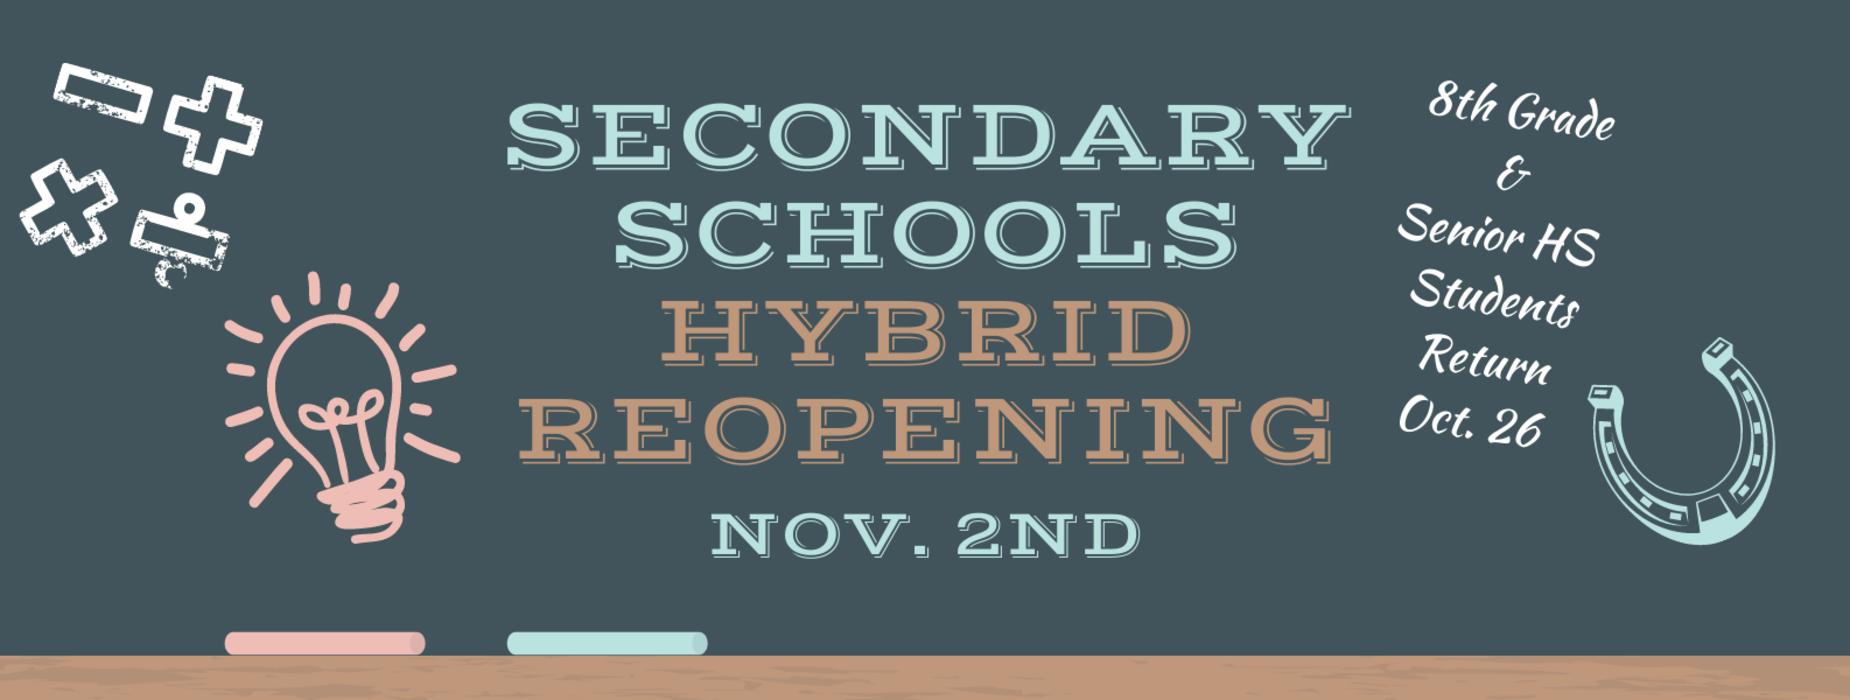 Chalkboard with message announcing secondary schools hybrid reopening on November 2